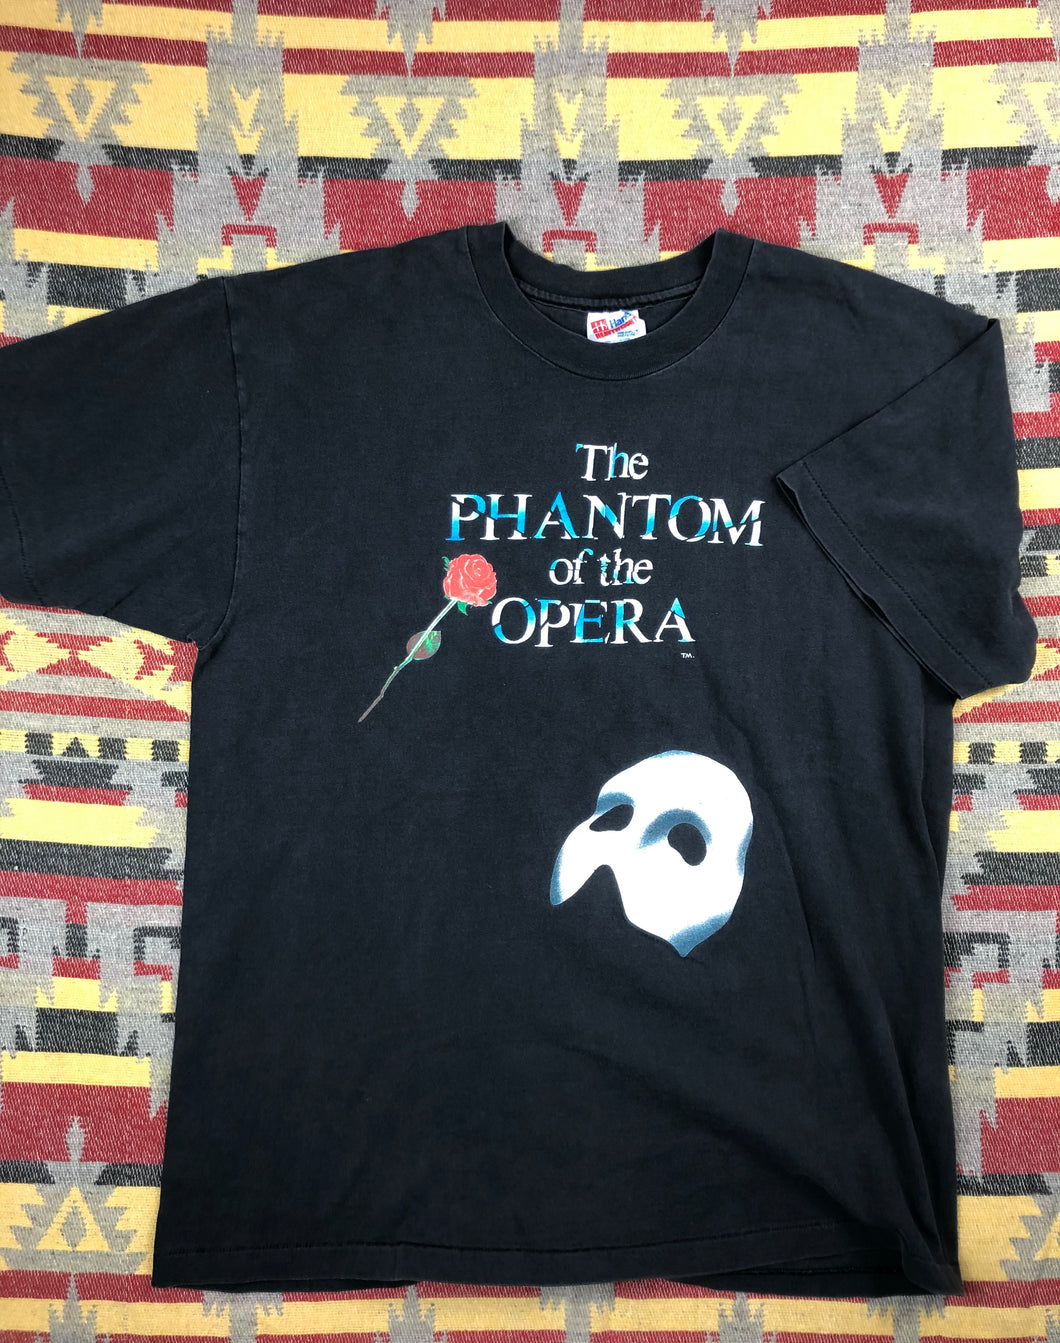 Vintage 90s The Phantom of the Opera shirt size L